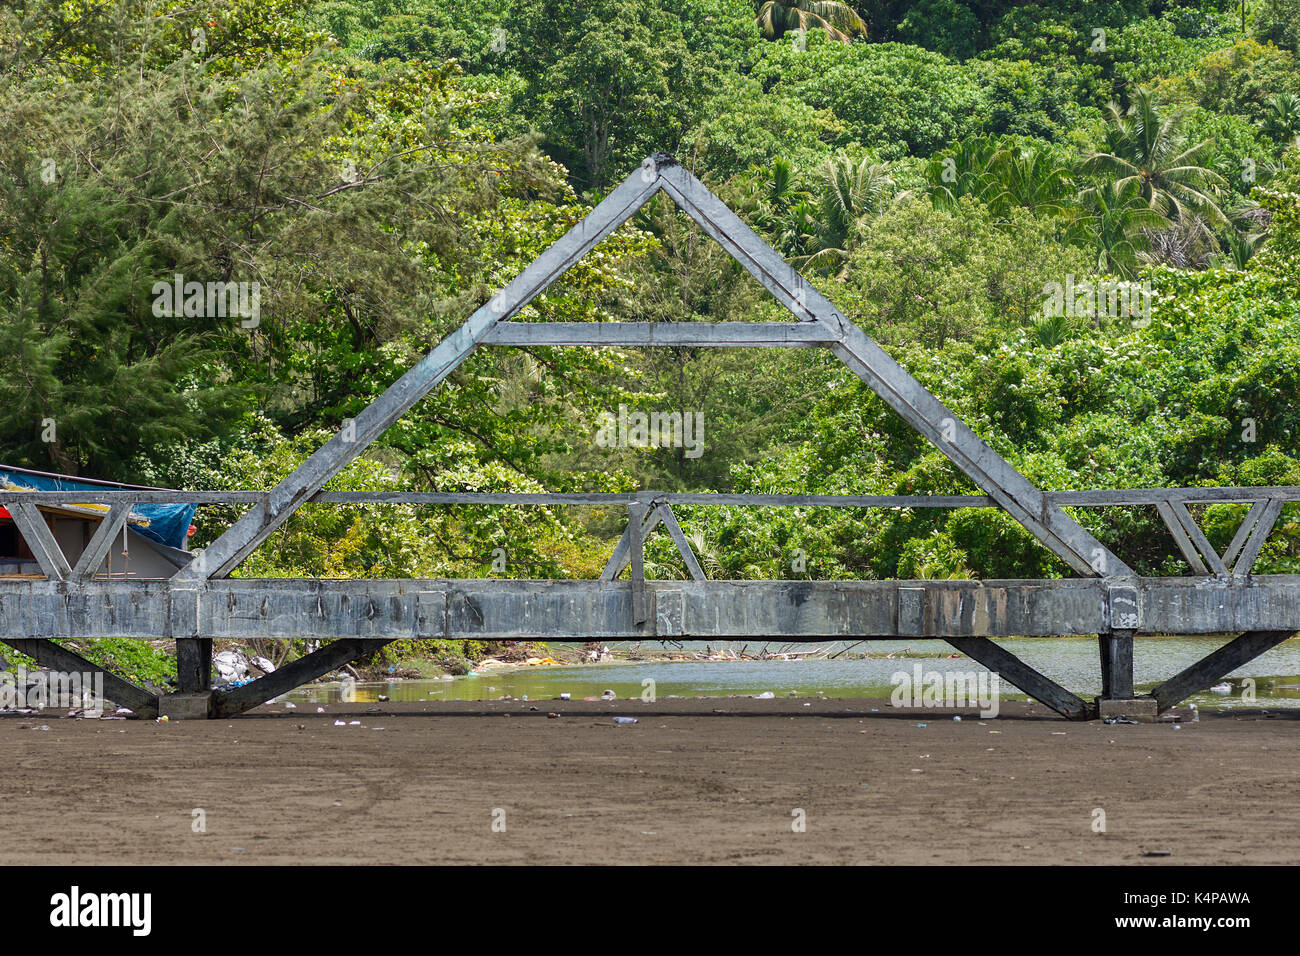 Poorly made concrete foot bridge over dry beach river bed with tropical forest background. - Stock Image